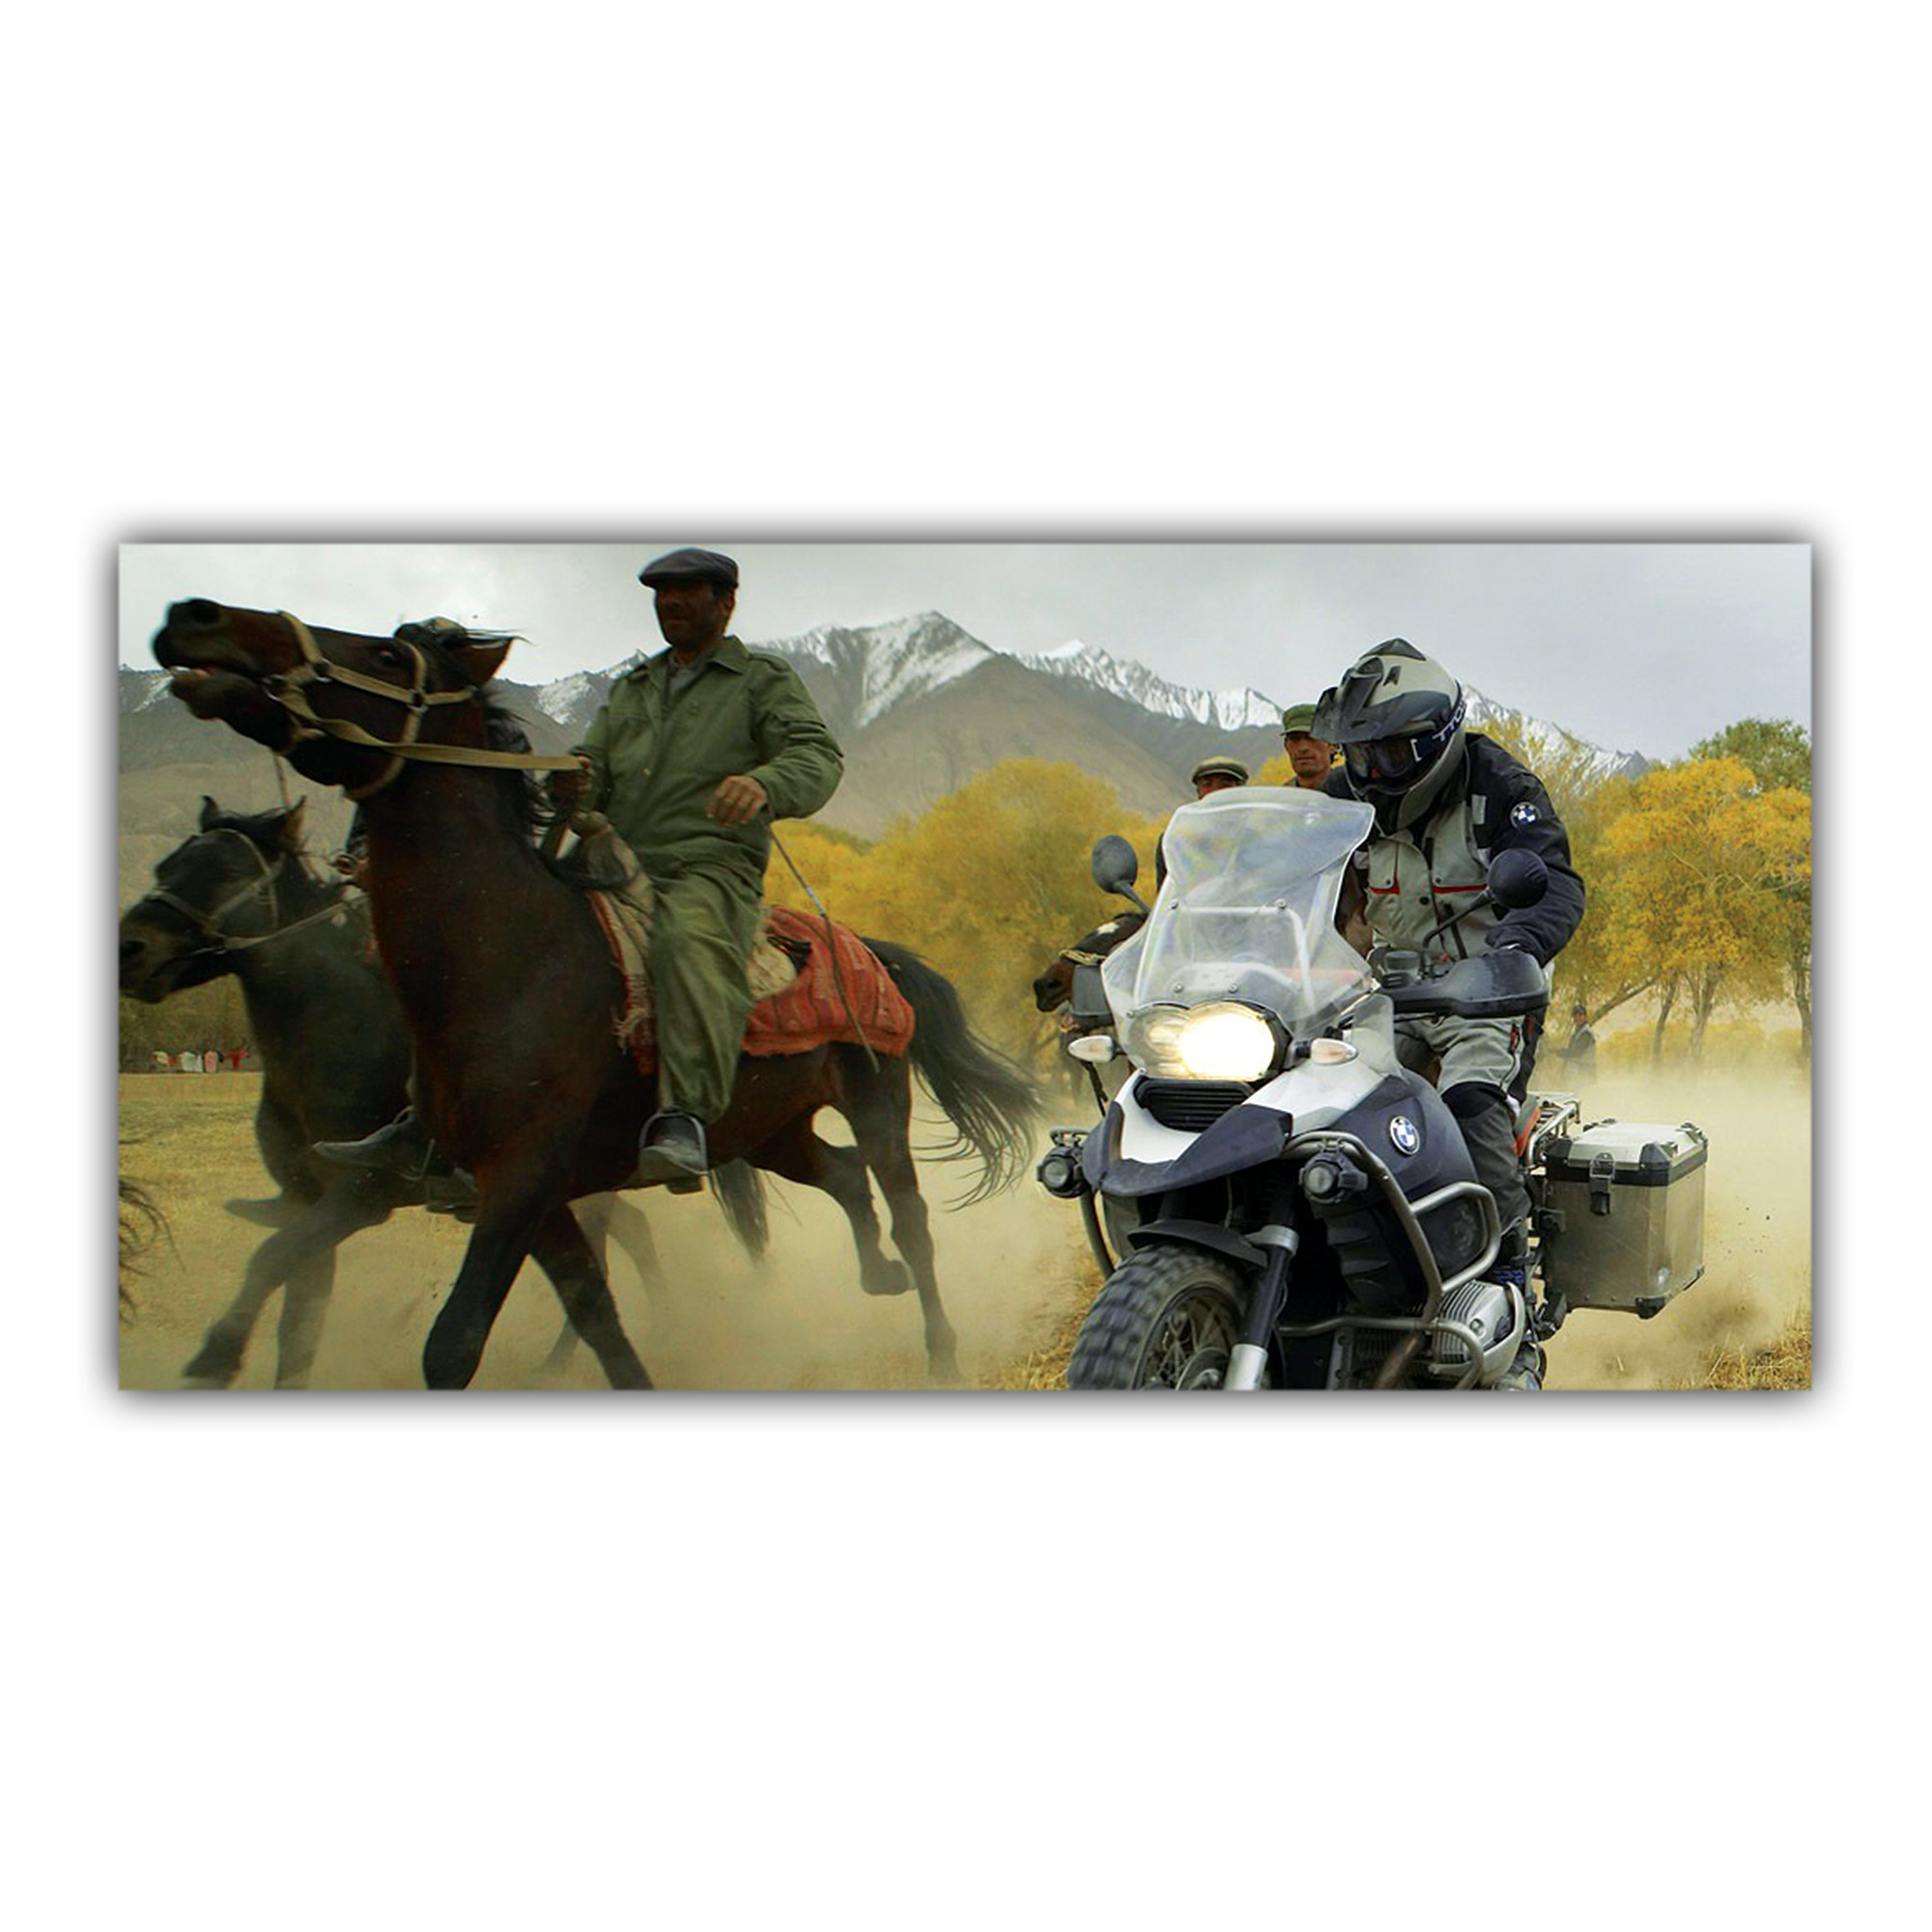 BMW 1200 GS Trail Nomades Cavaliers Chevaux